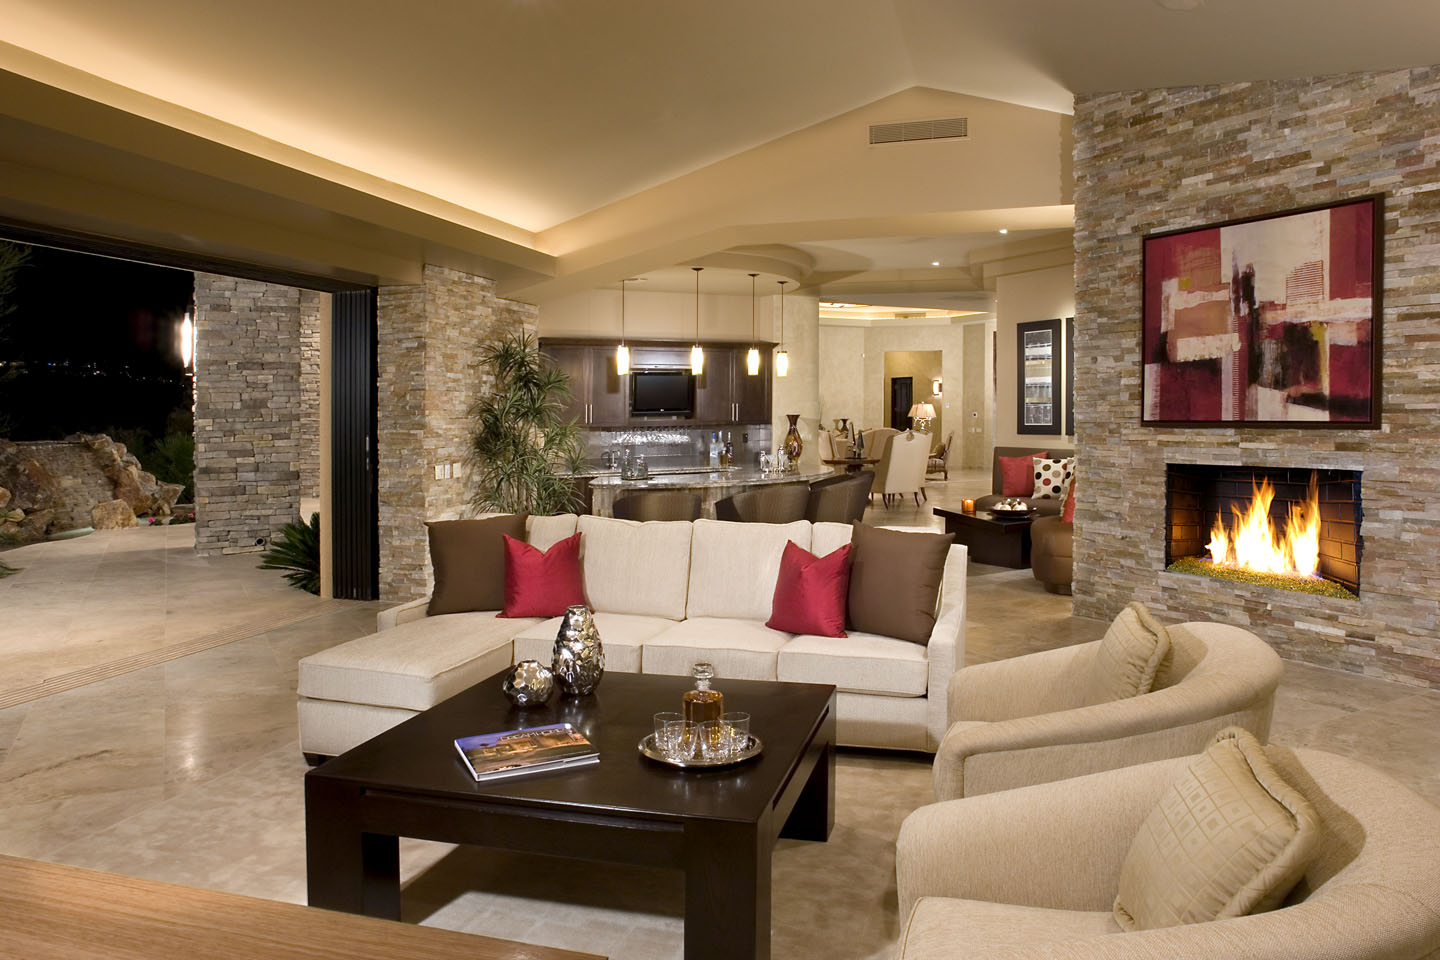 Rock your home with stone interior accents for Pictures of beautiful houses interior